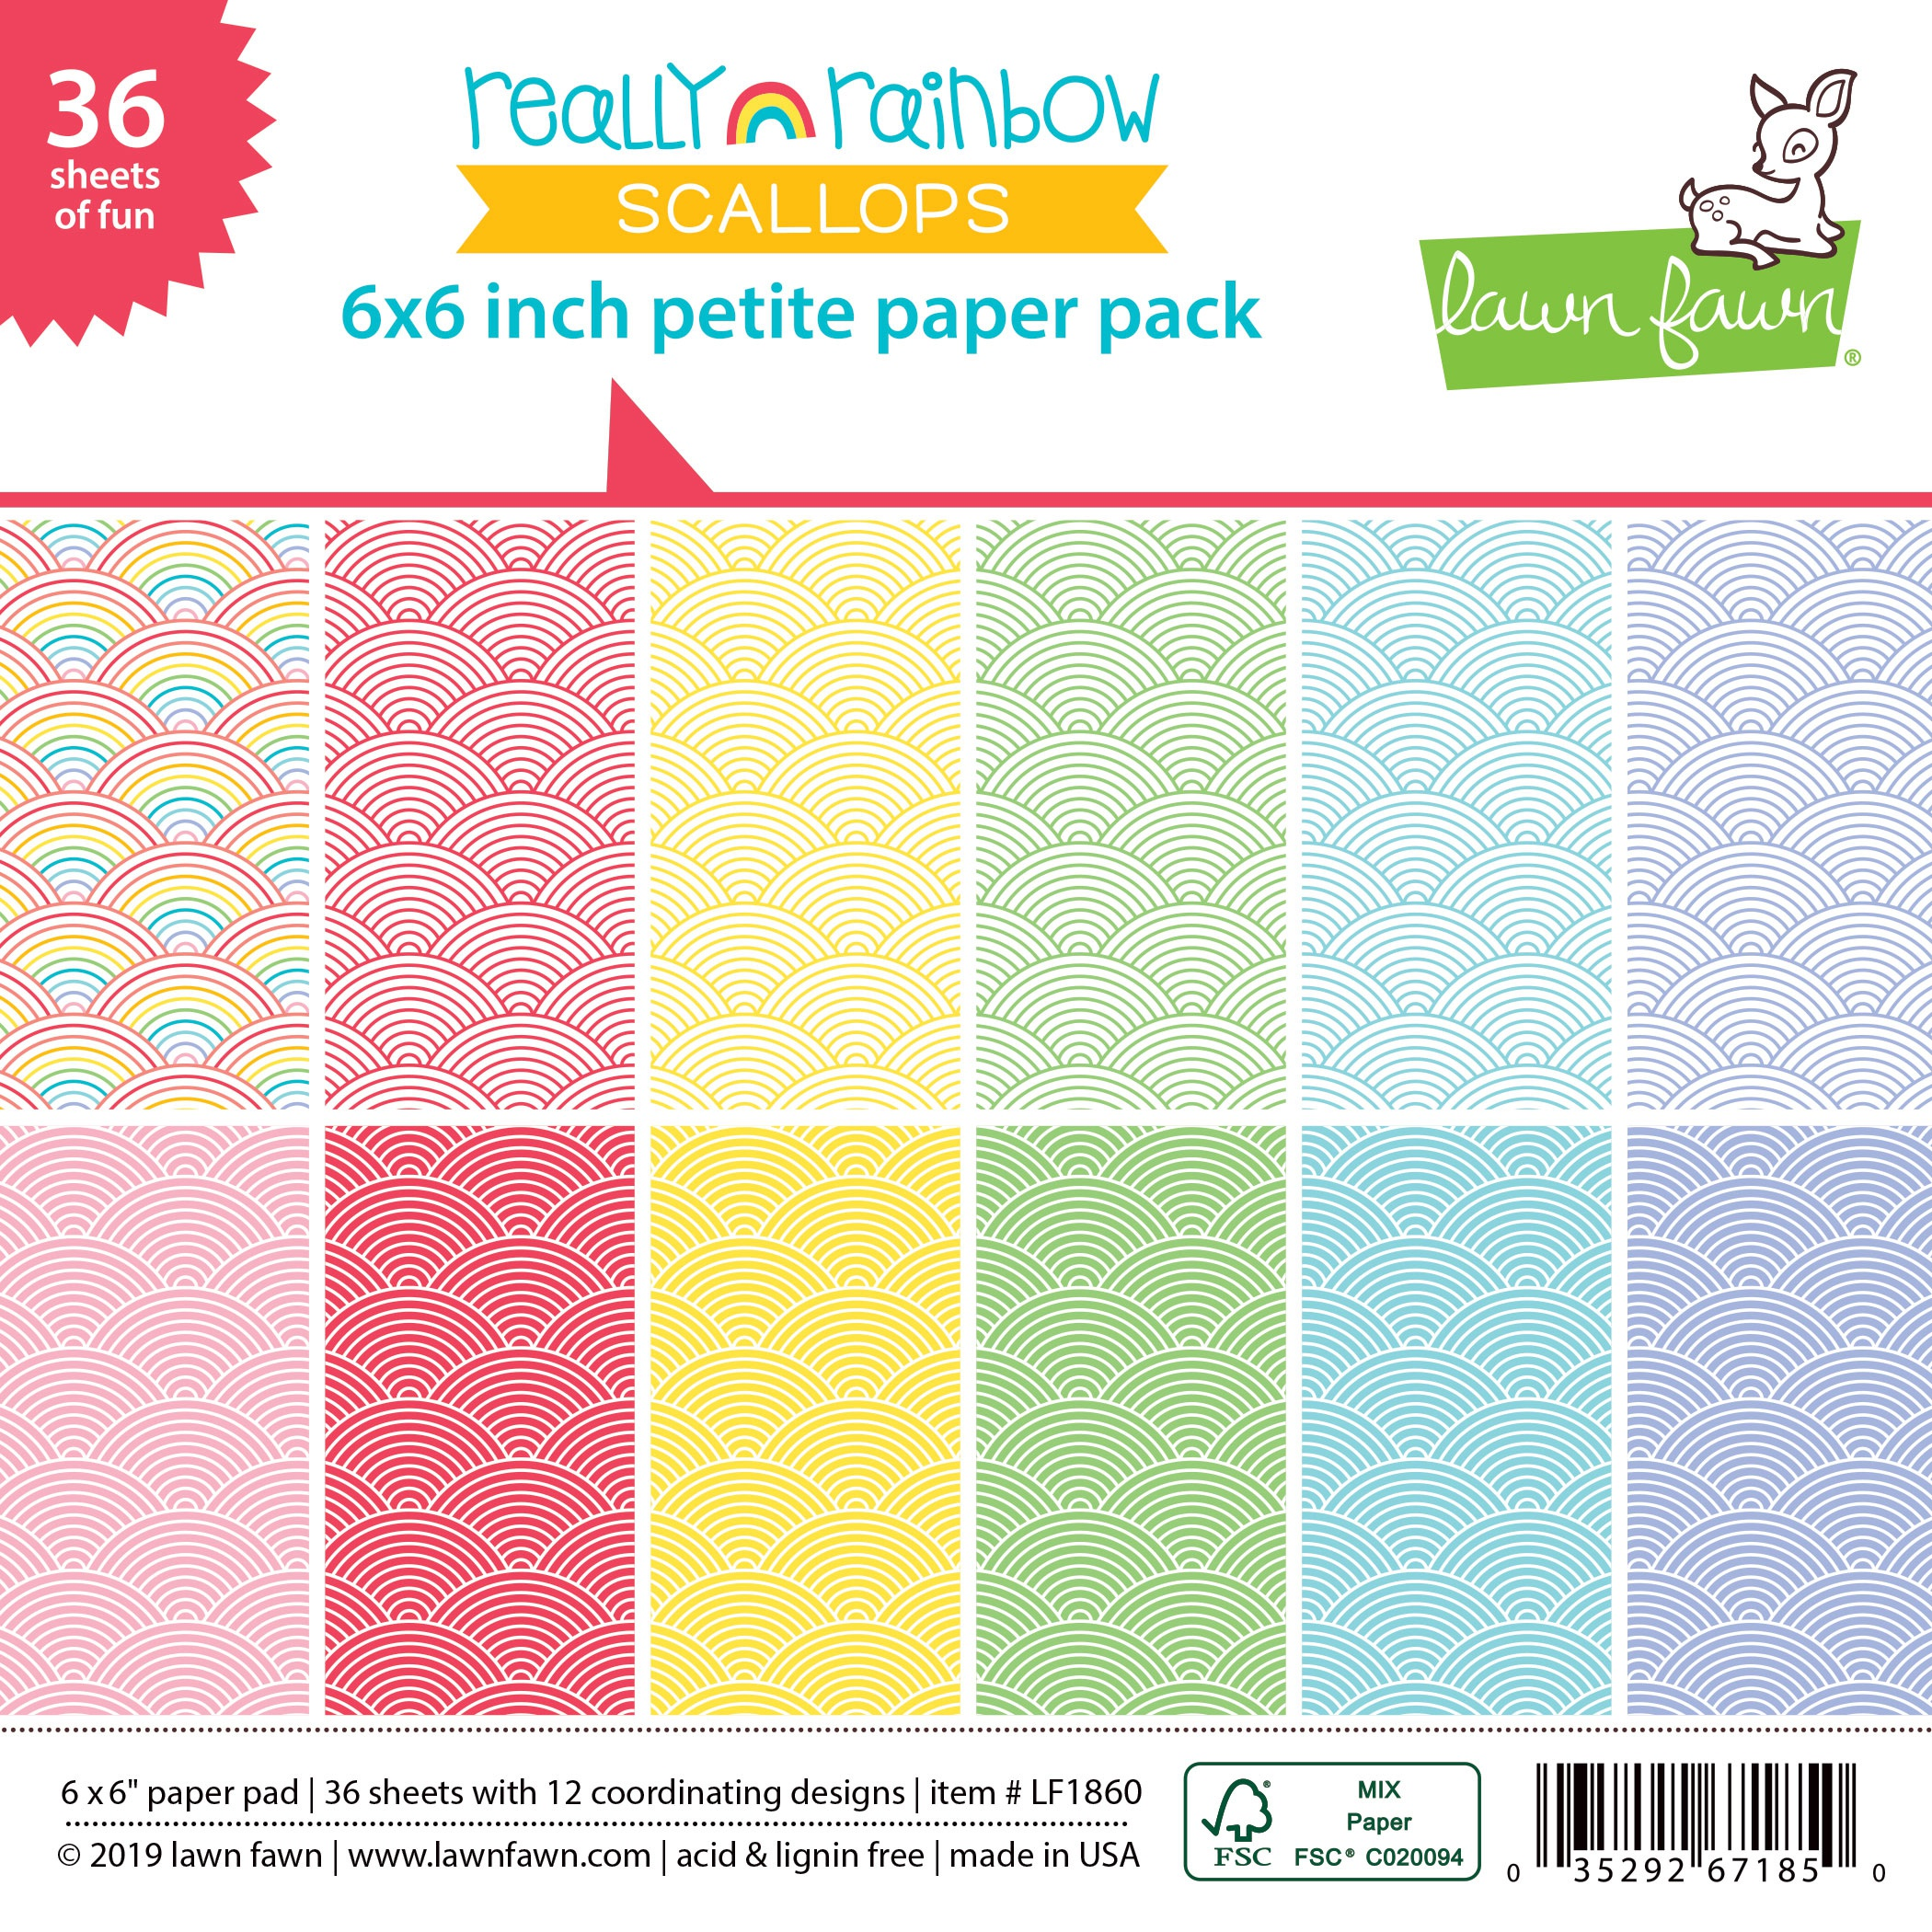 Lawn Fawn - Really Rainbow Scallops - 6x6 Petit Paper Pad